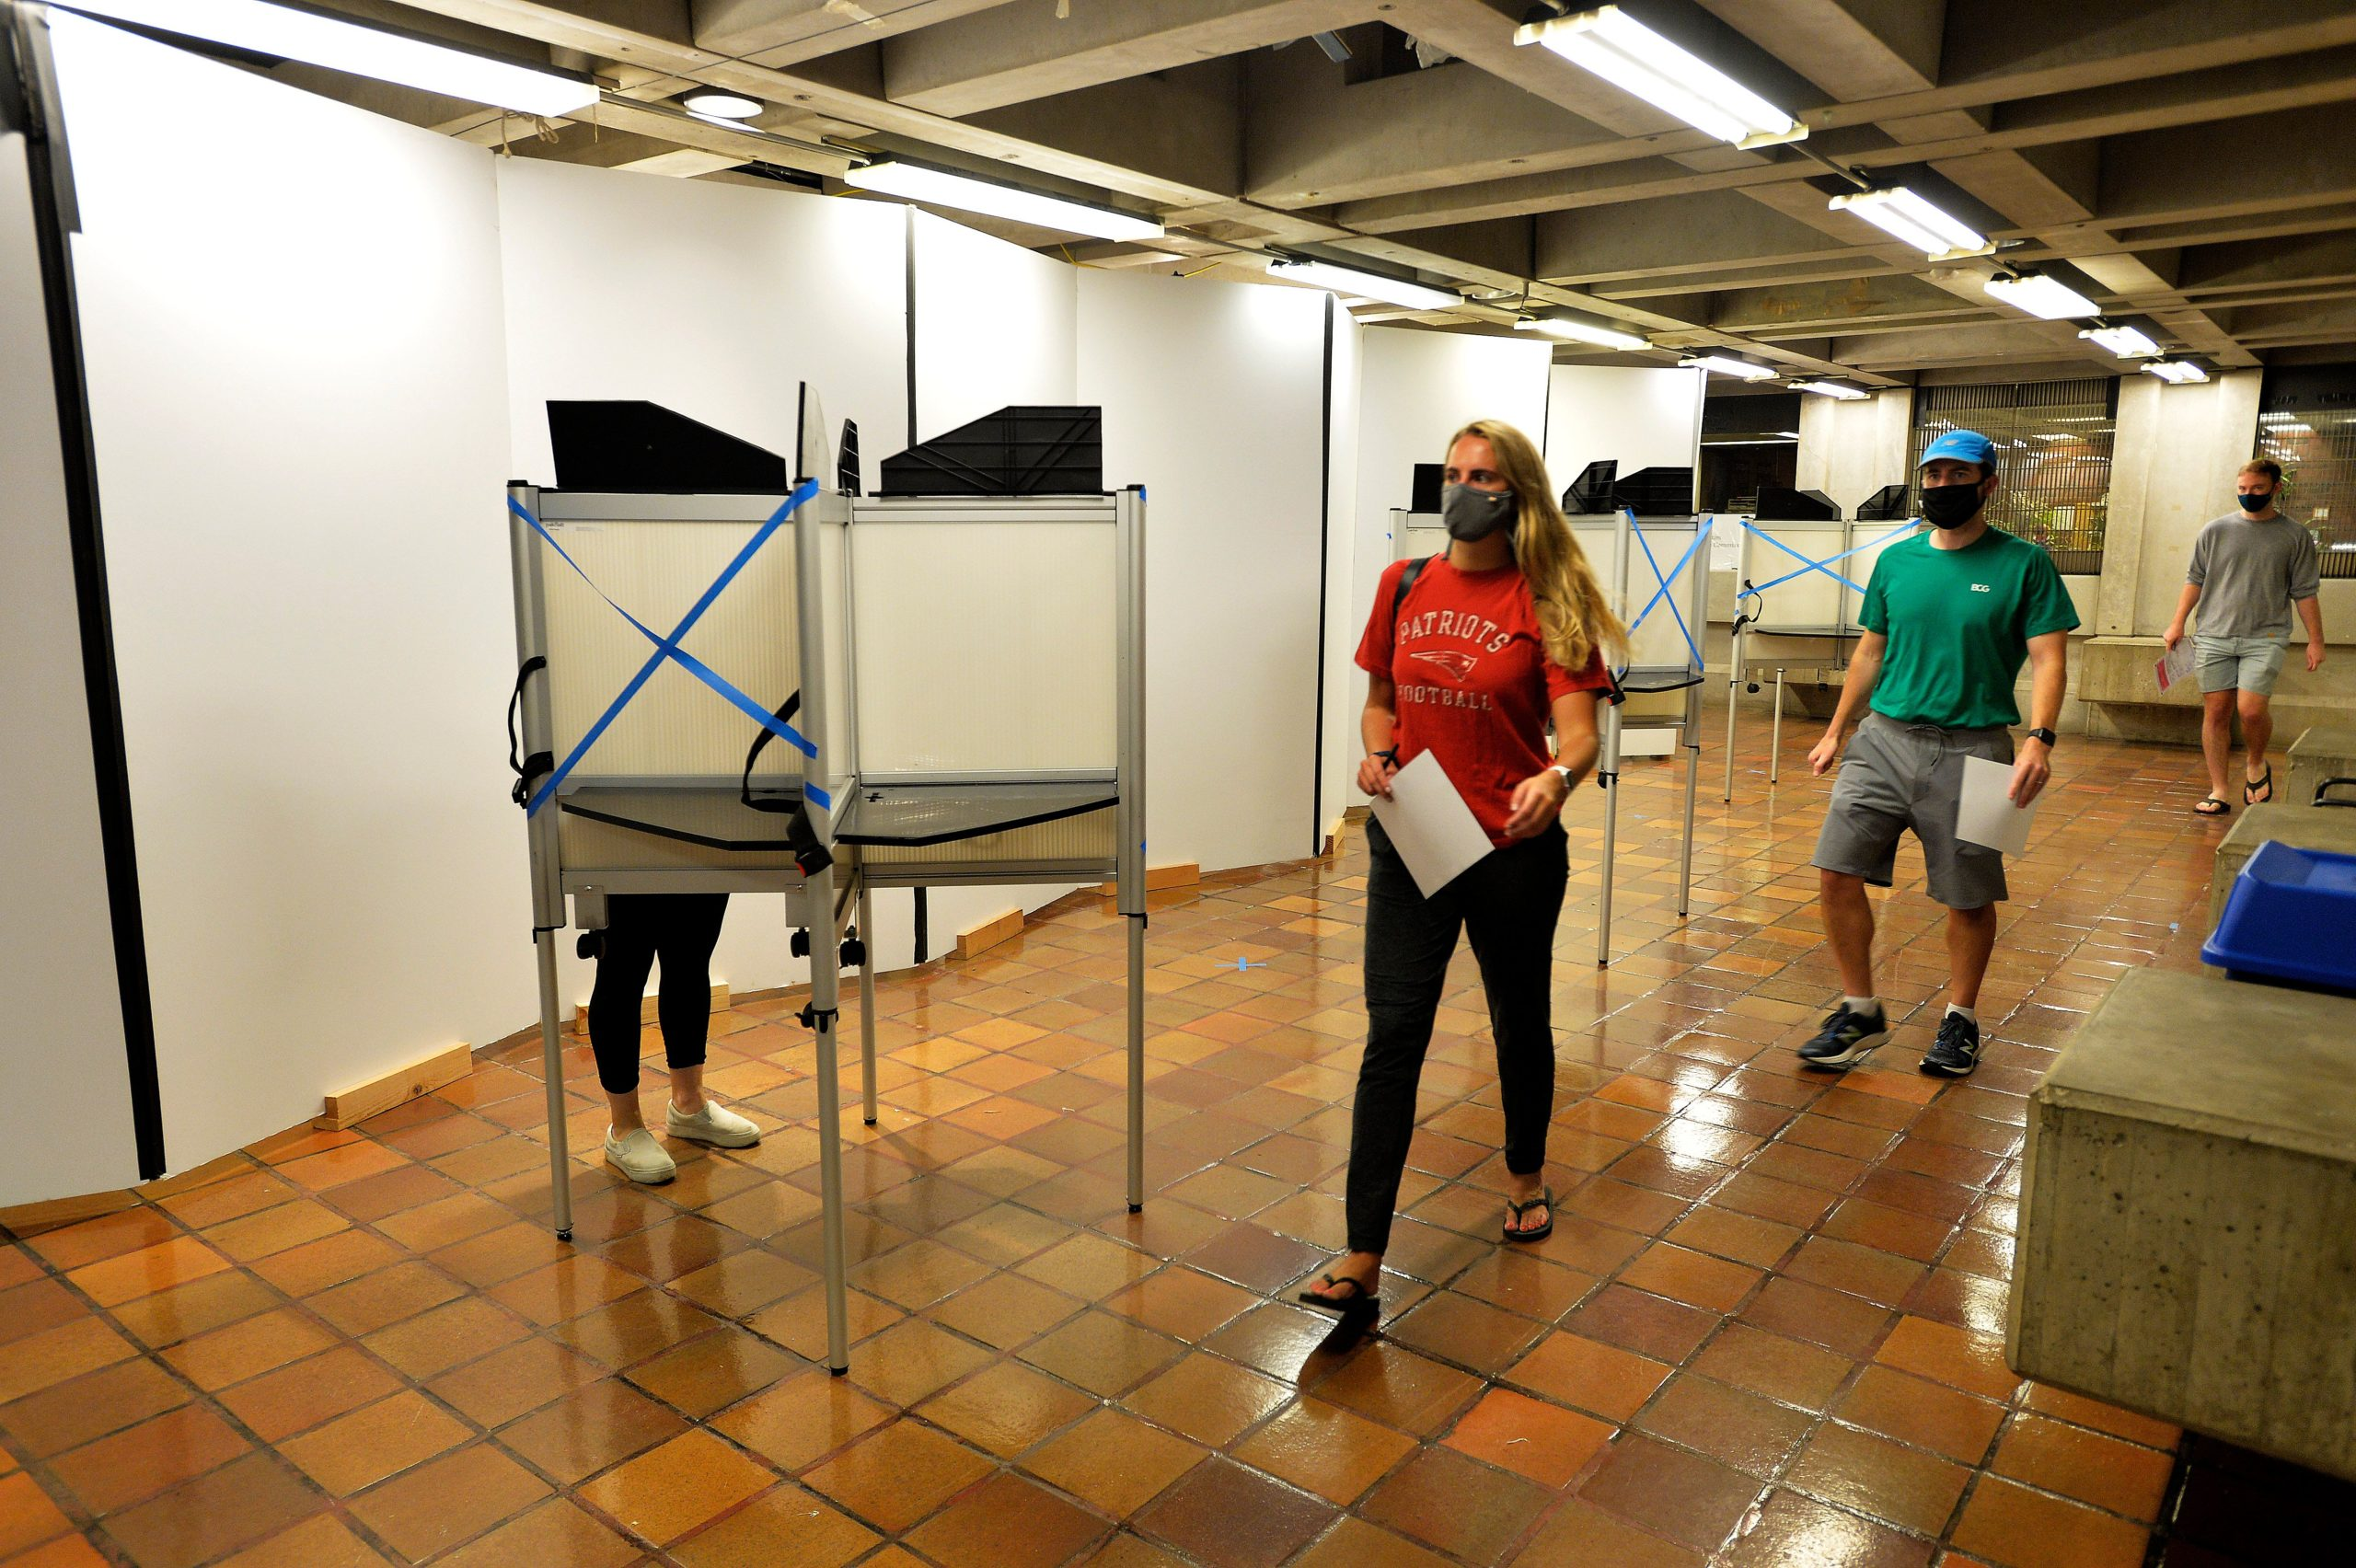 Voters with their ballots leave the polling booths at Boston City Hall during the Massachusetts State Primary on September 1, 2020 in Boston, Massachusetts. (Photo by Joseph Prezioso / AFP) (Photo by JOSEPH PREZIOSO/AFP via Getty Images)